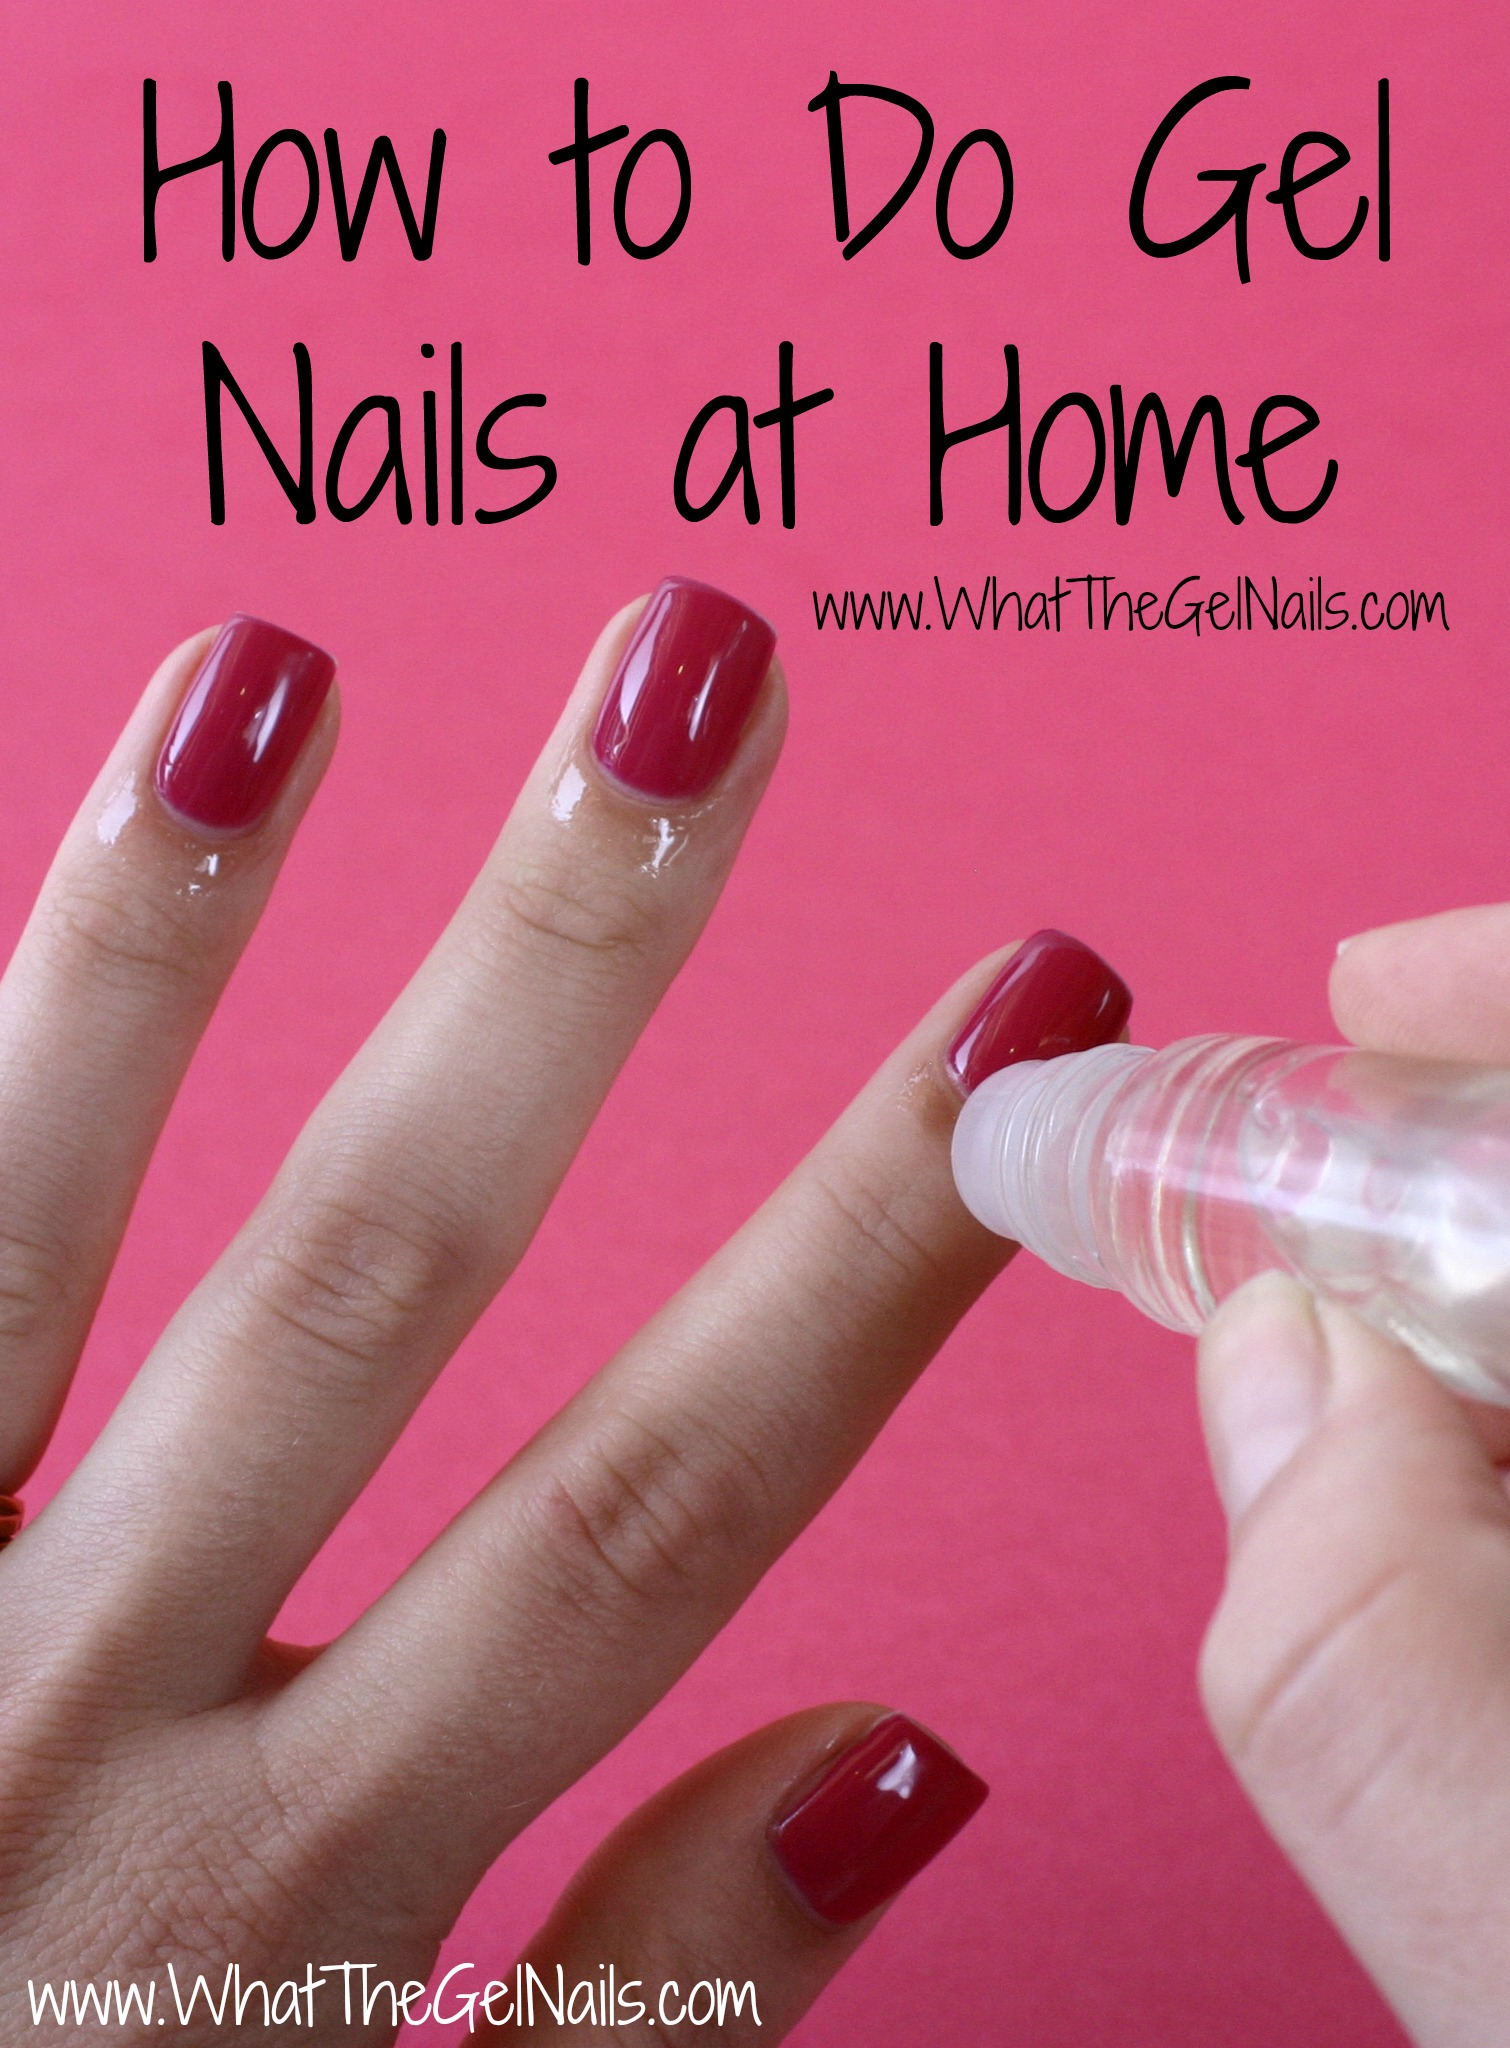 How to do gel nails at home without uv light - Expression Nails